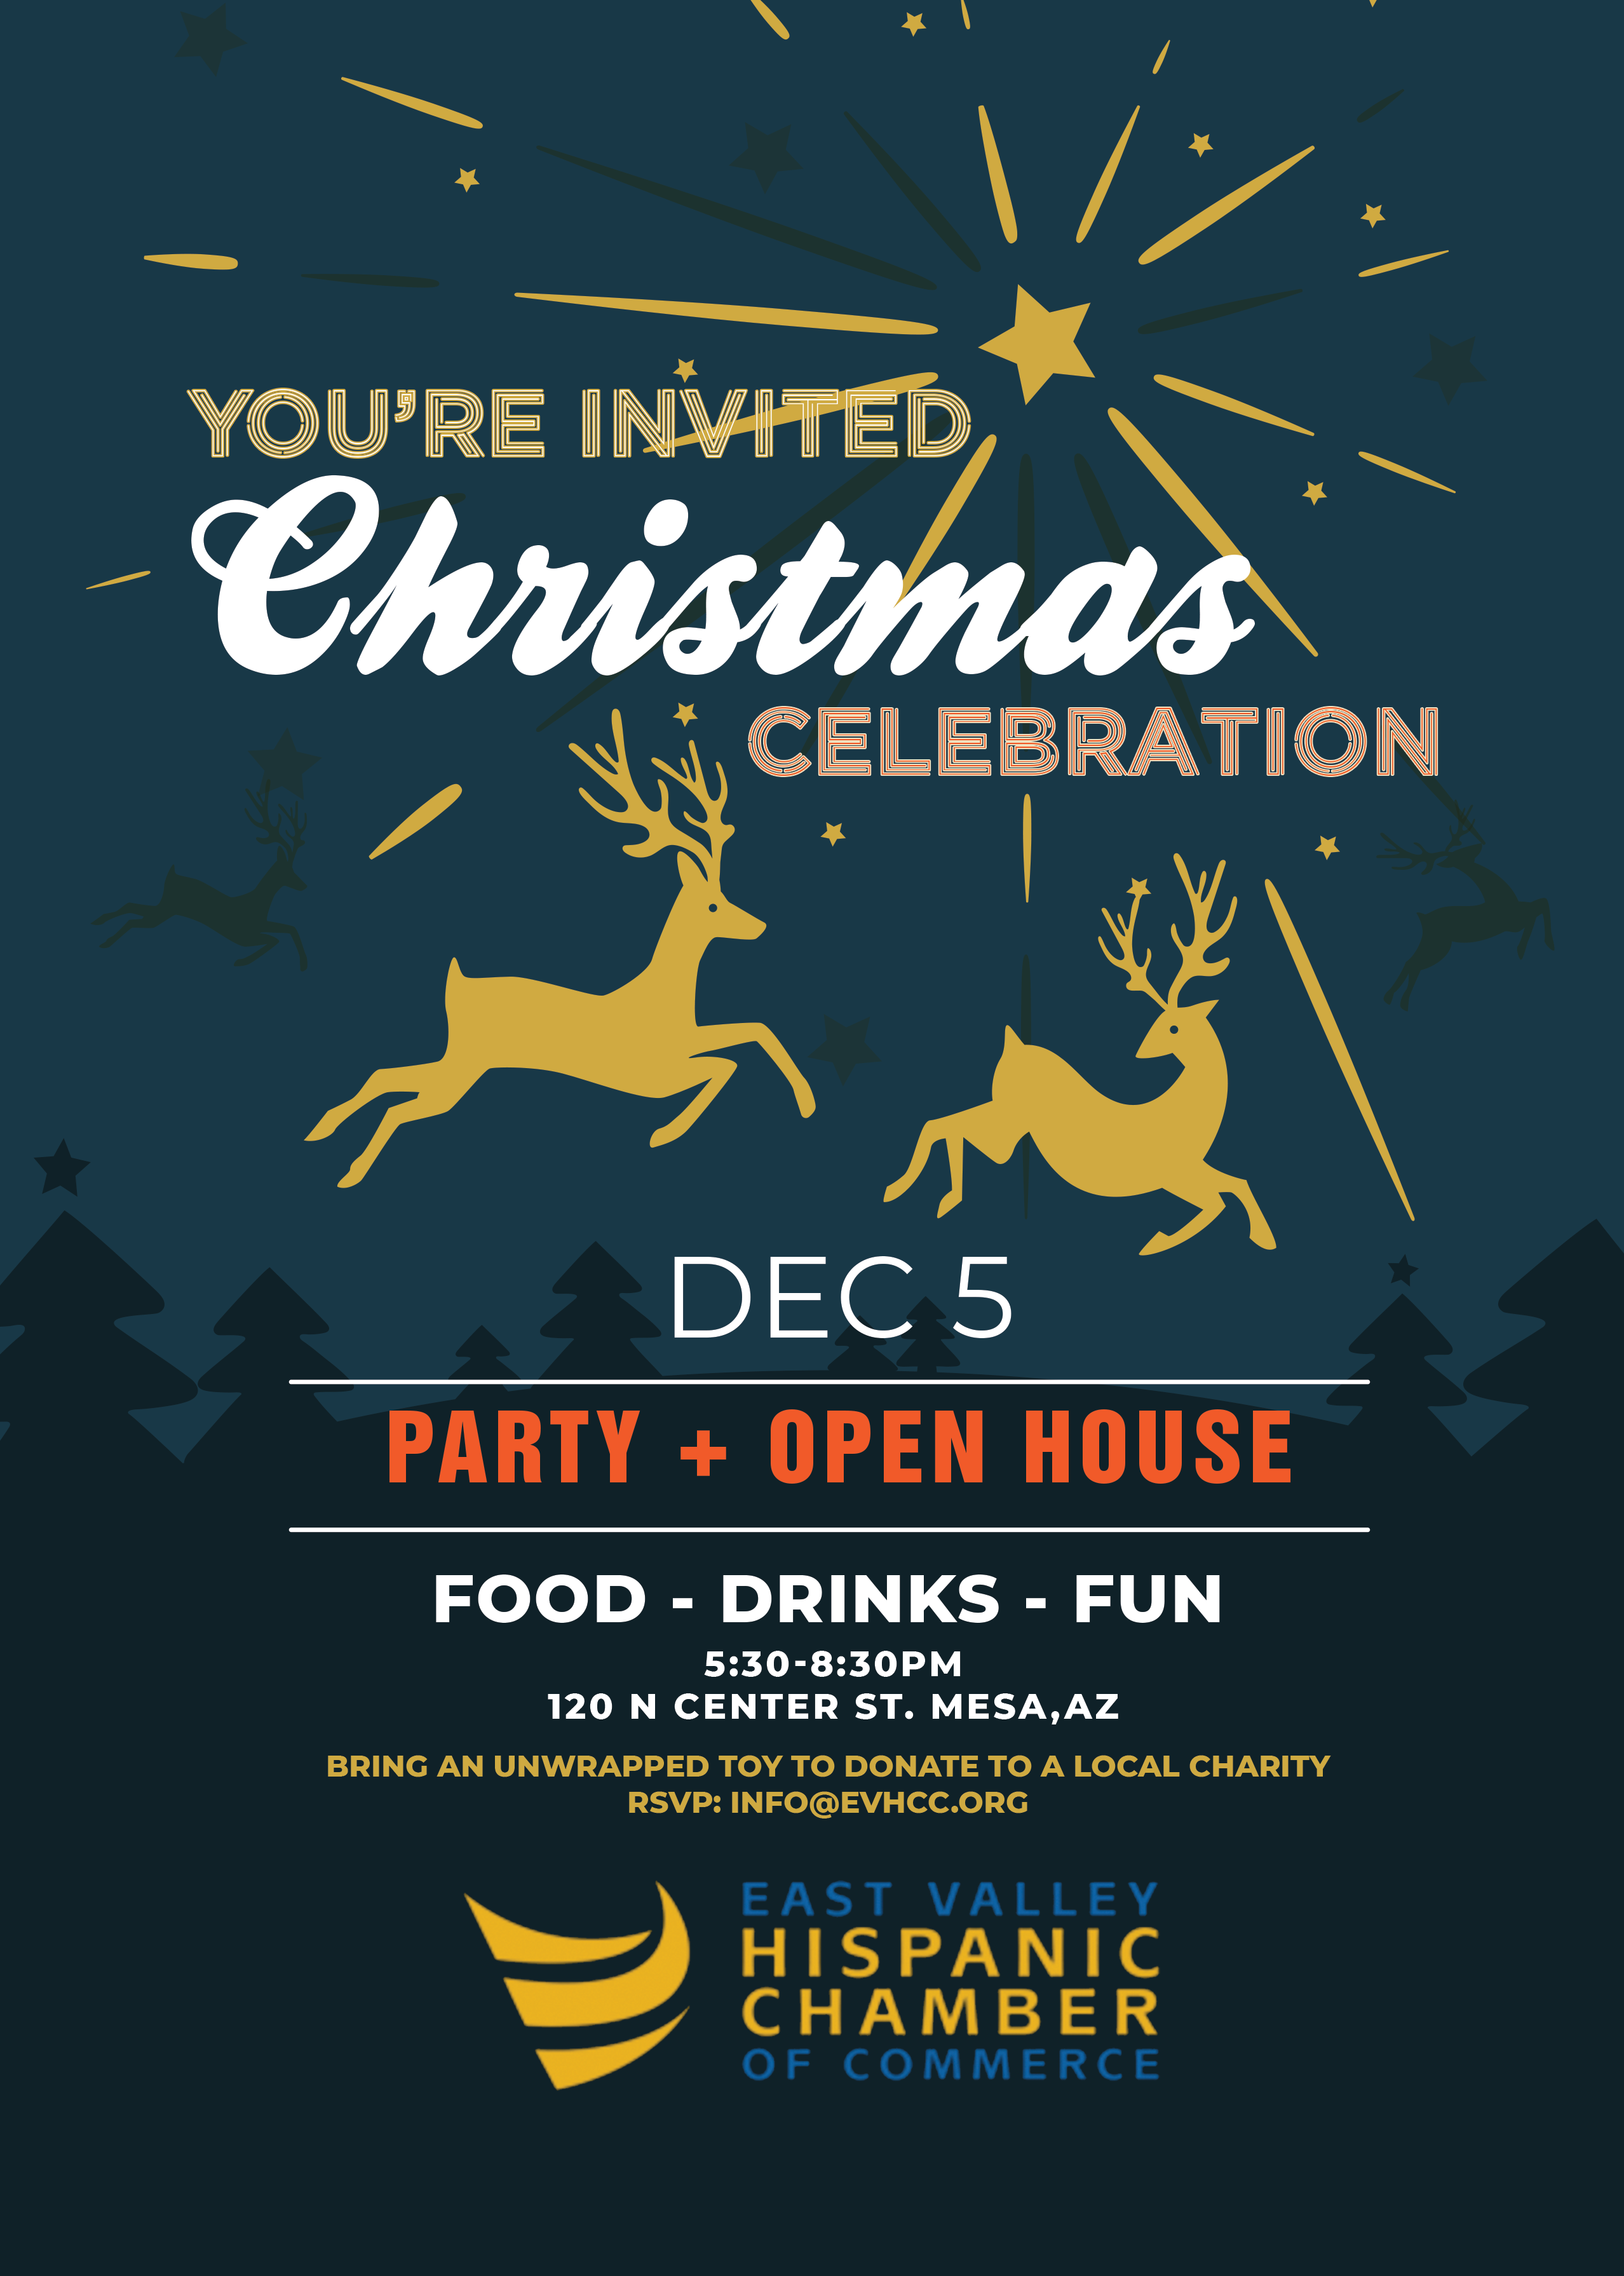 Christmas Celebration Dec 5, 2019 by the East Valley Hispanic Chamber of Commerce